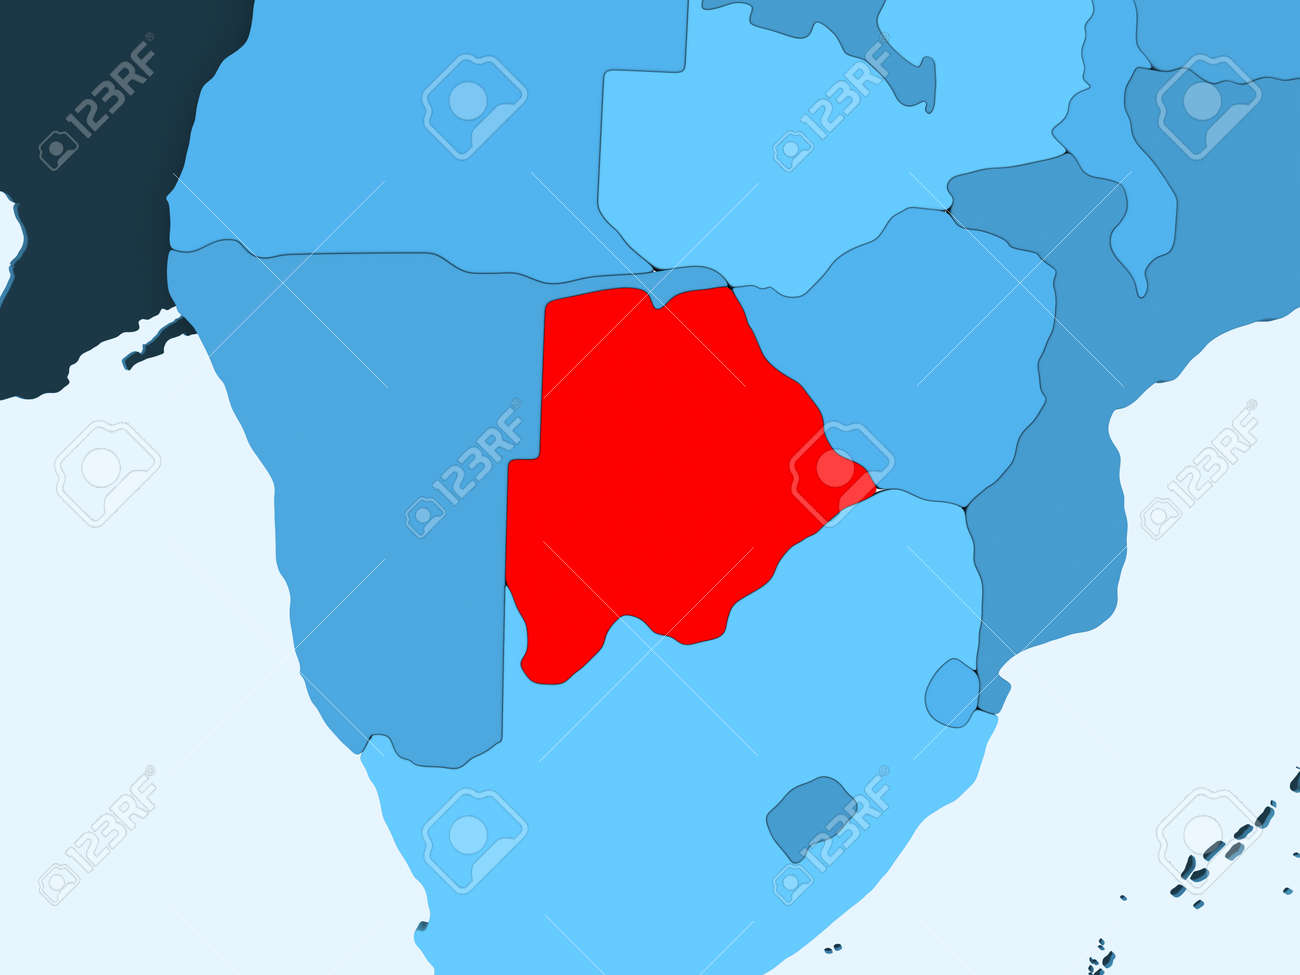 Botswana Political Map.Botswana In Red On Blue Political Map With Transparent Oceans